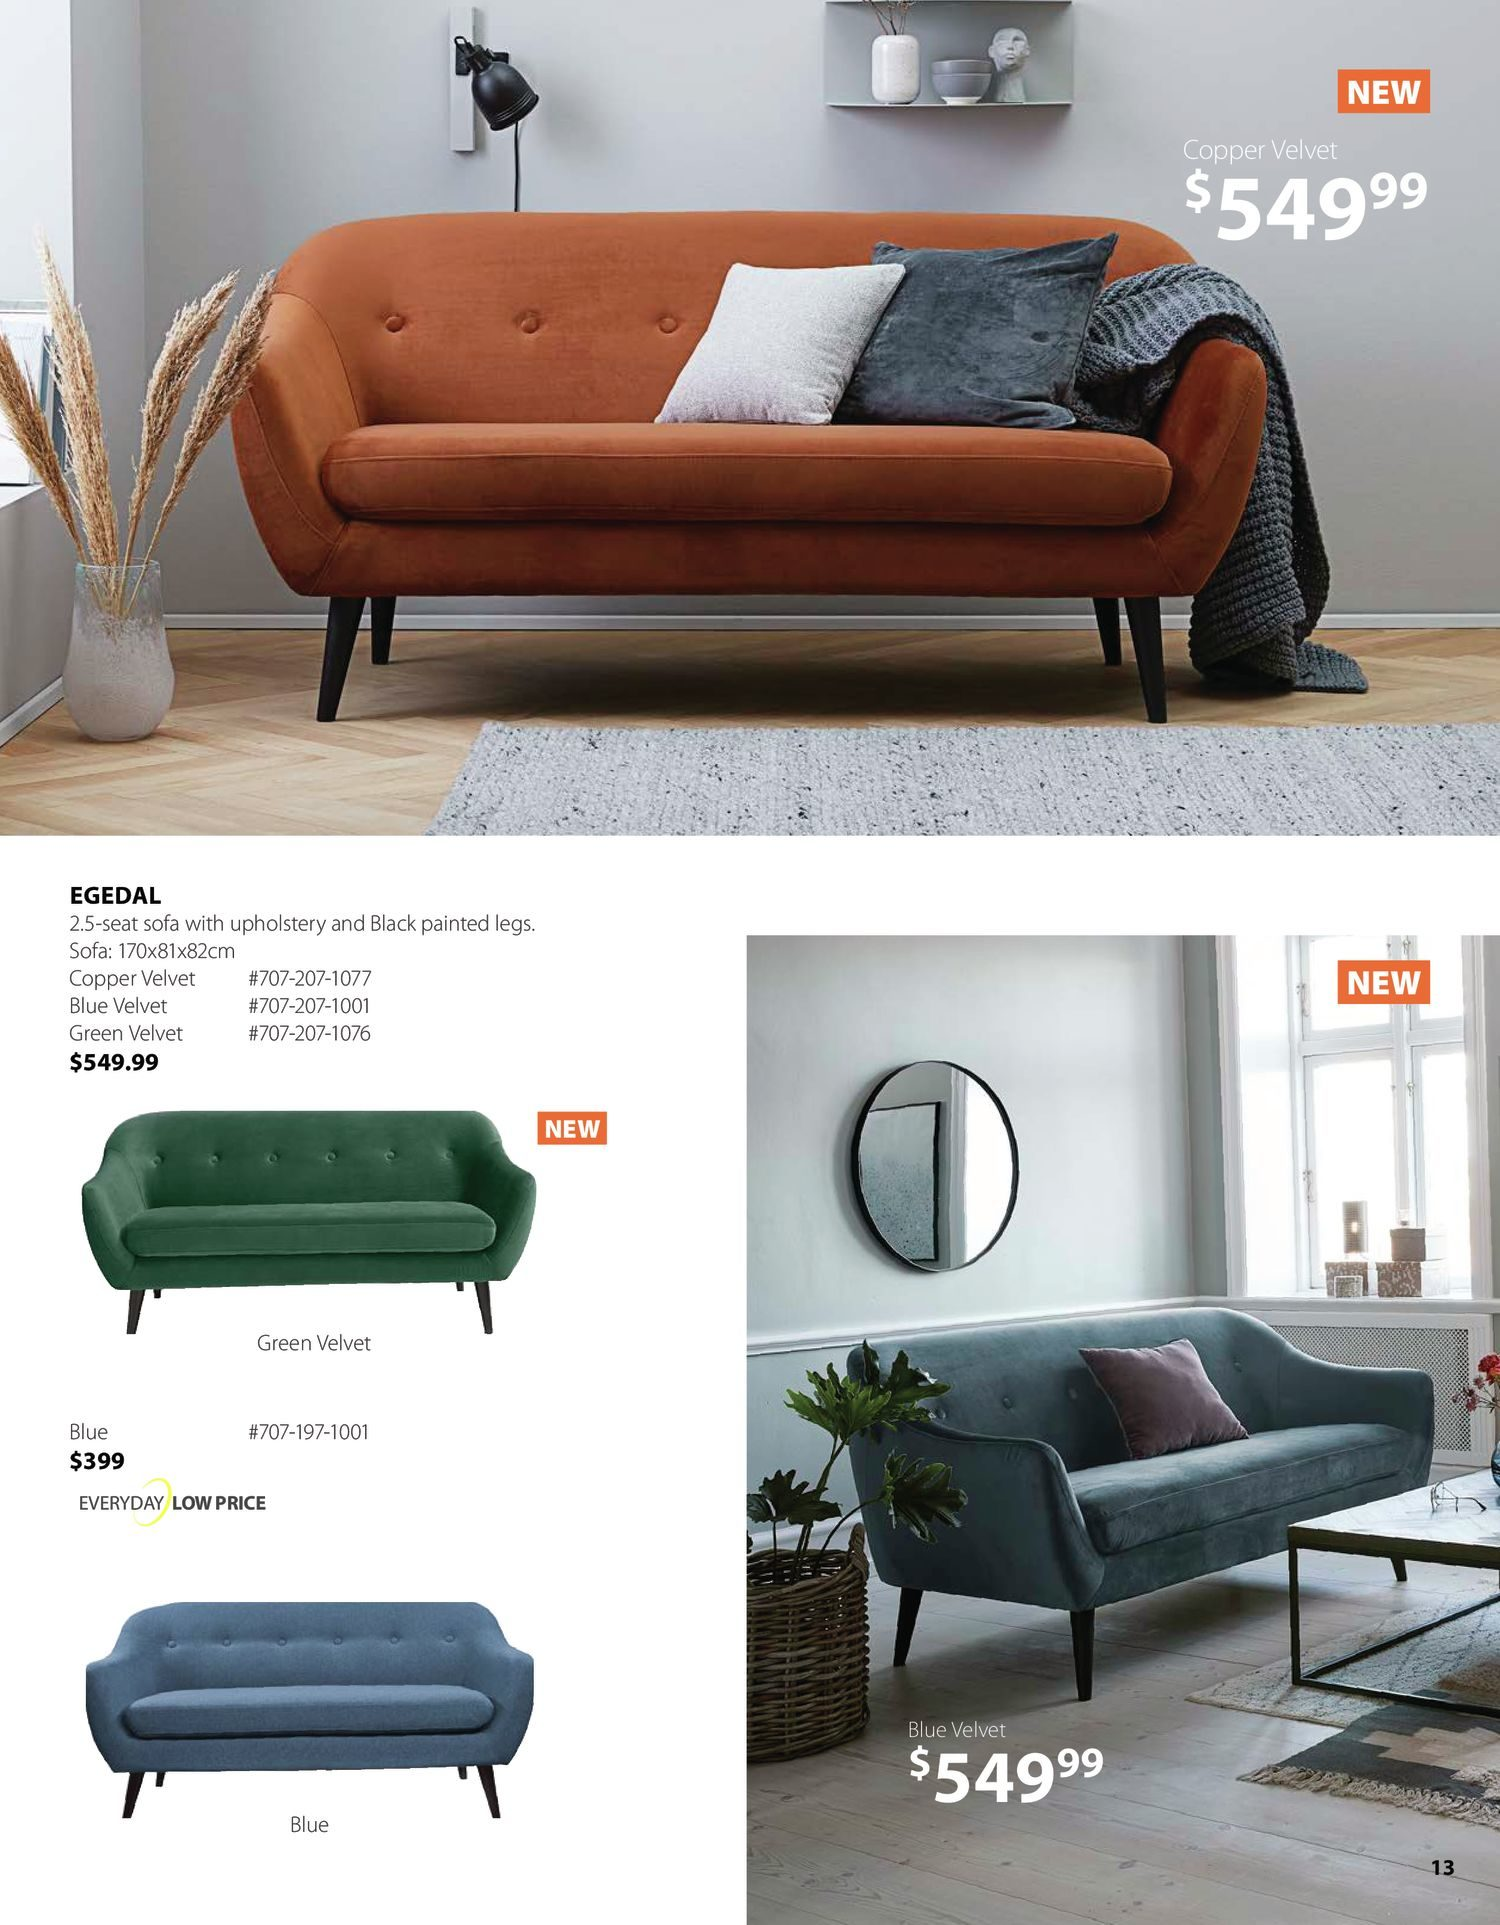 Jysk - Furniture Catalogue - Be Inspired - Page 13